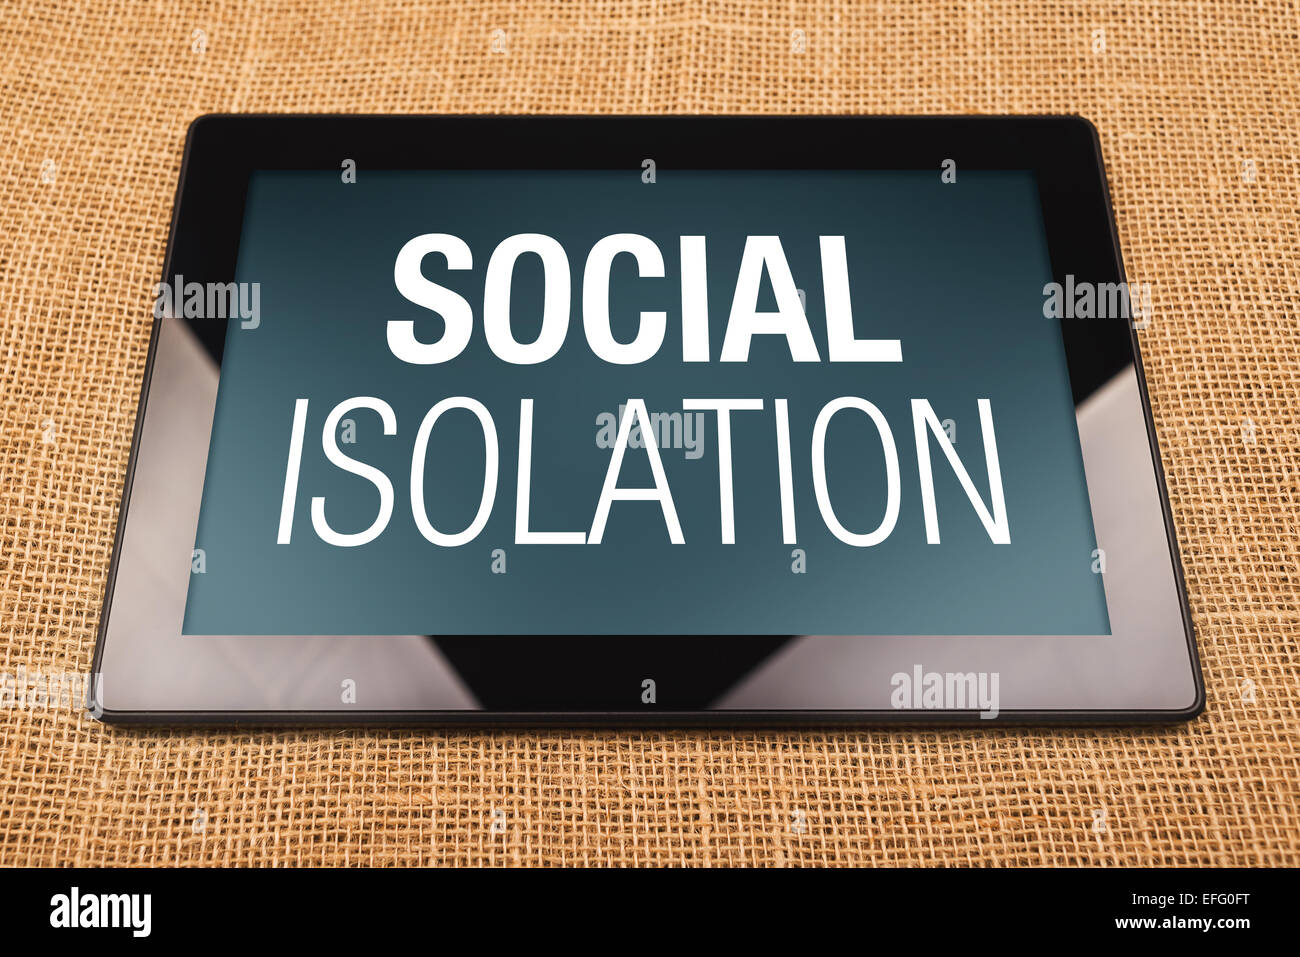 Digital Tablet Computer with Social Isolation displayed on the screen. - Stock Image